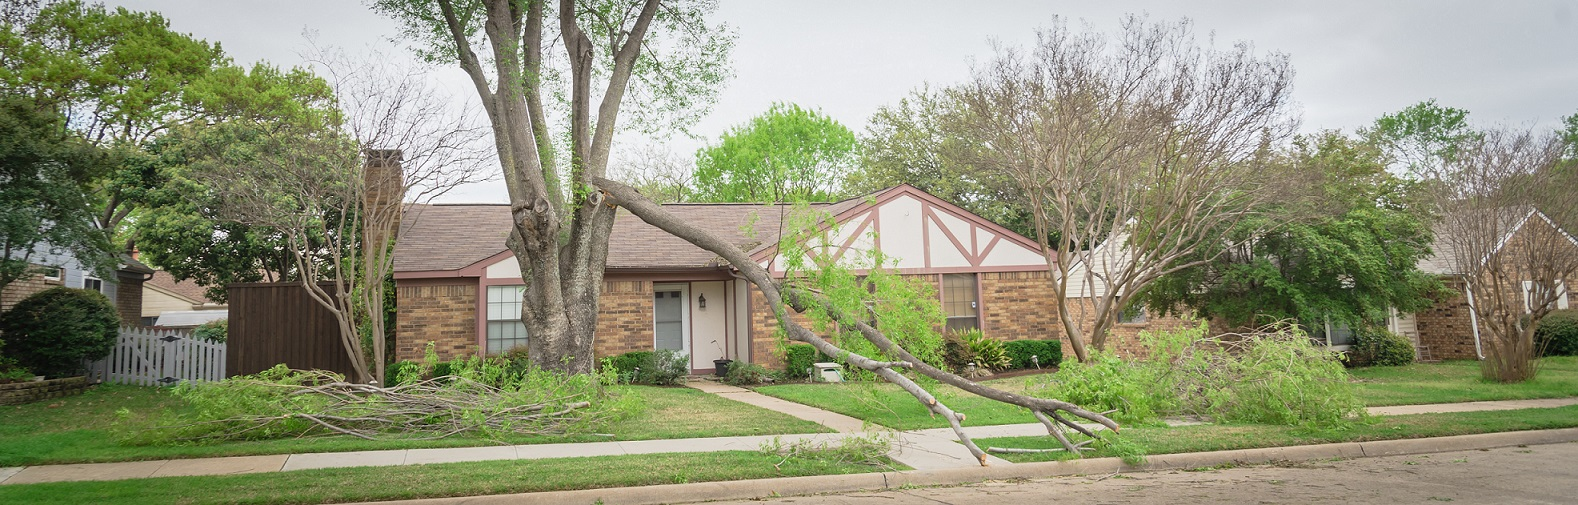 house with tree that has fallen on the roof